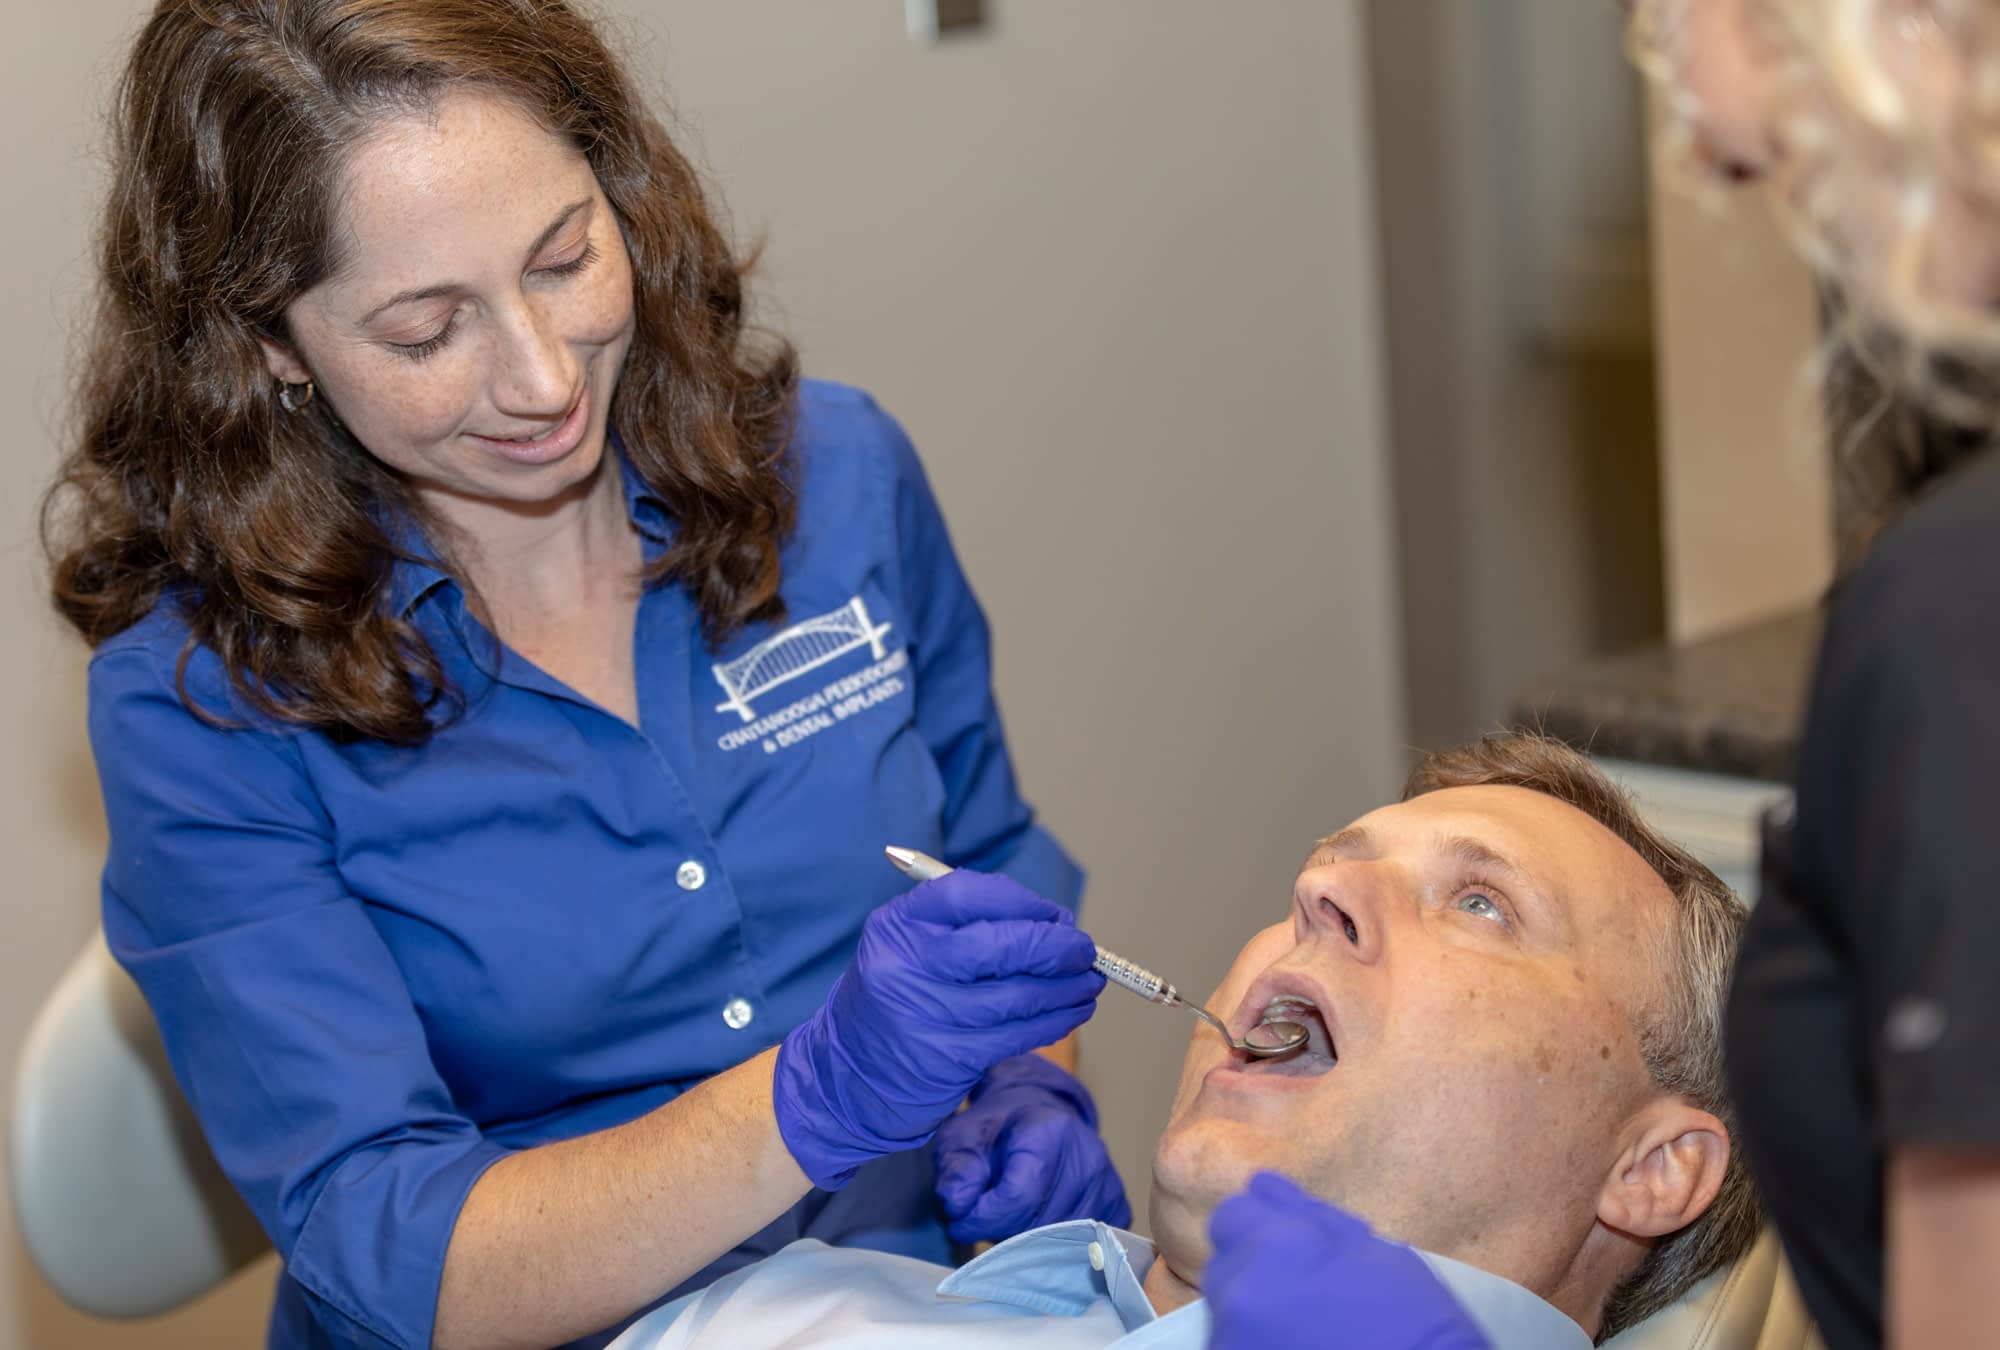 Dr Elizabeth examining a patient at Dr Felts Office Chattanooga TN